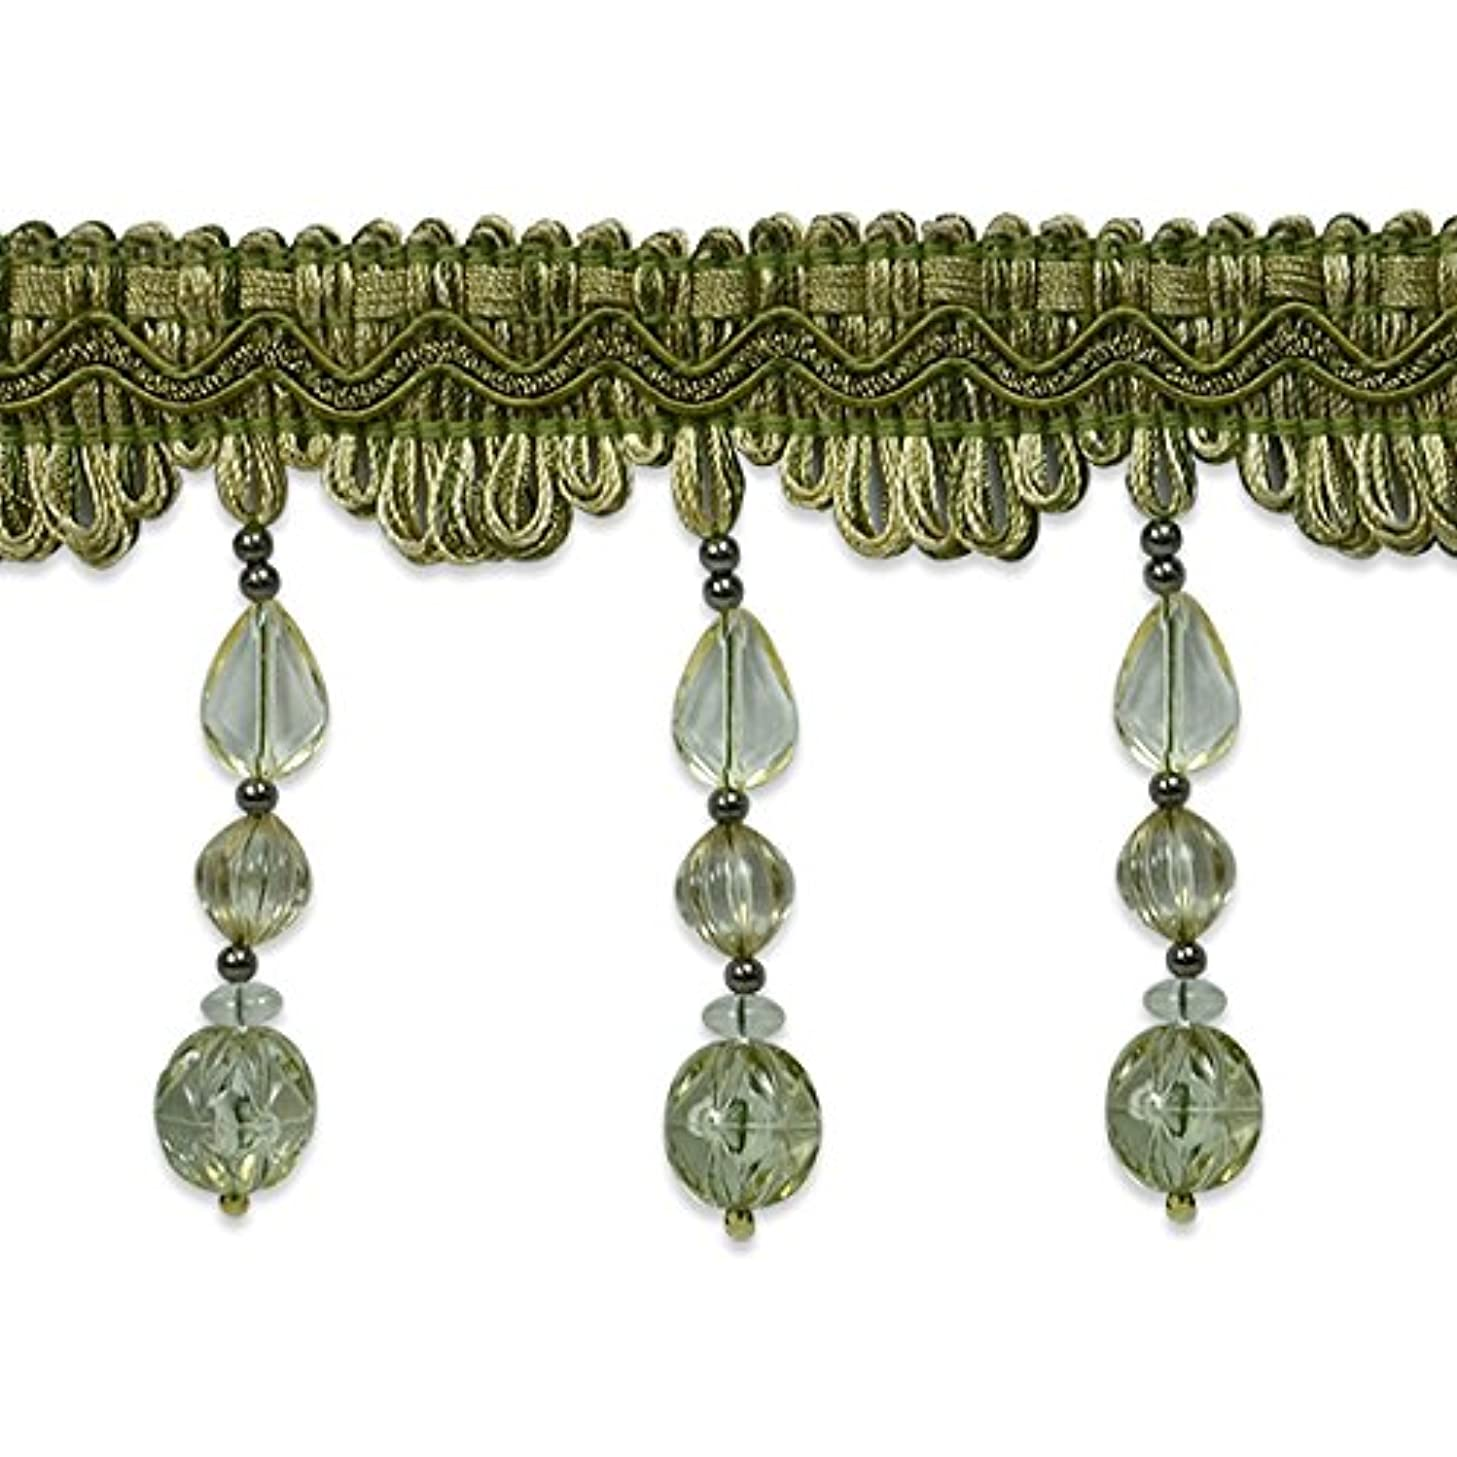 Expo International Tessa Bead Fringe Trim Embellishment, 20-Yard, Sage